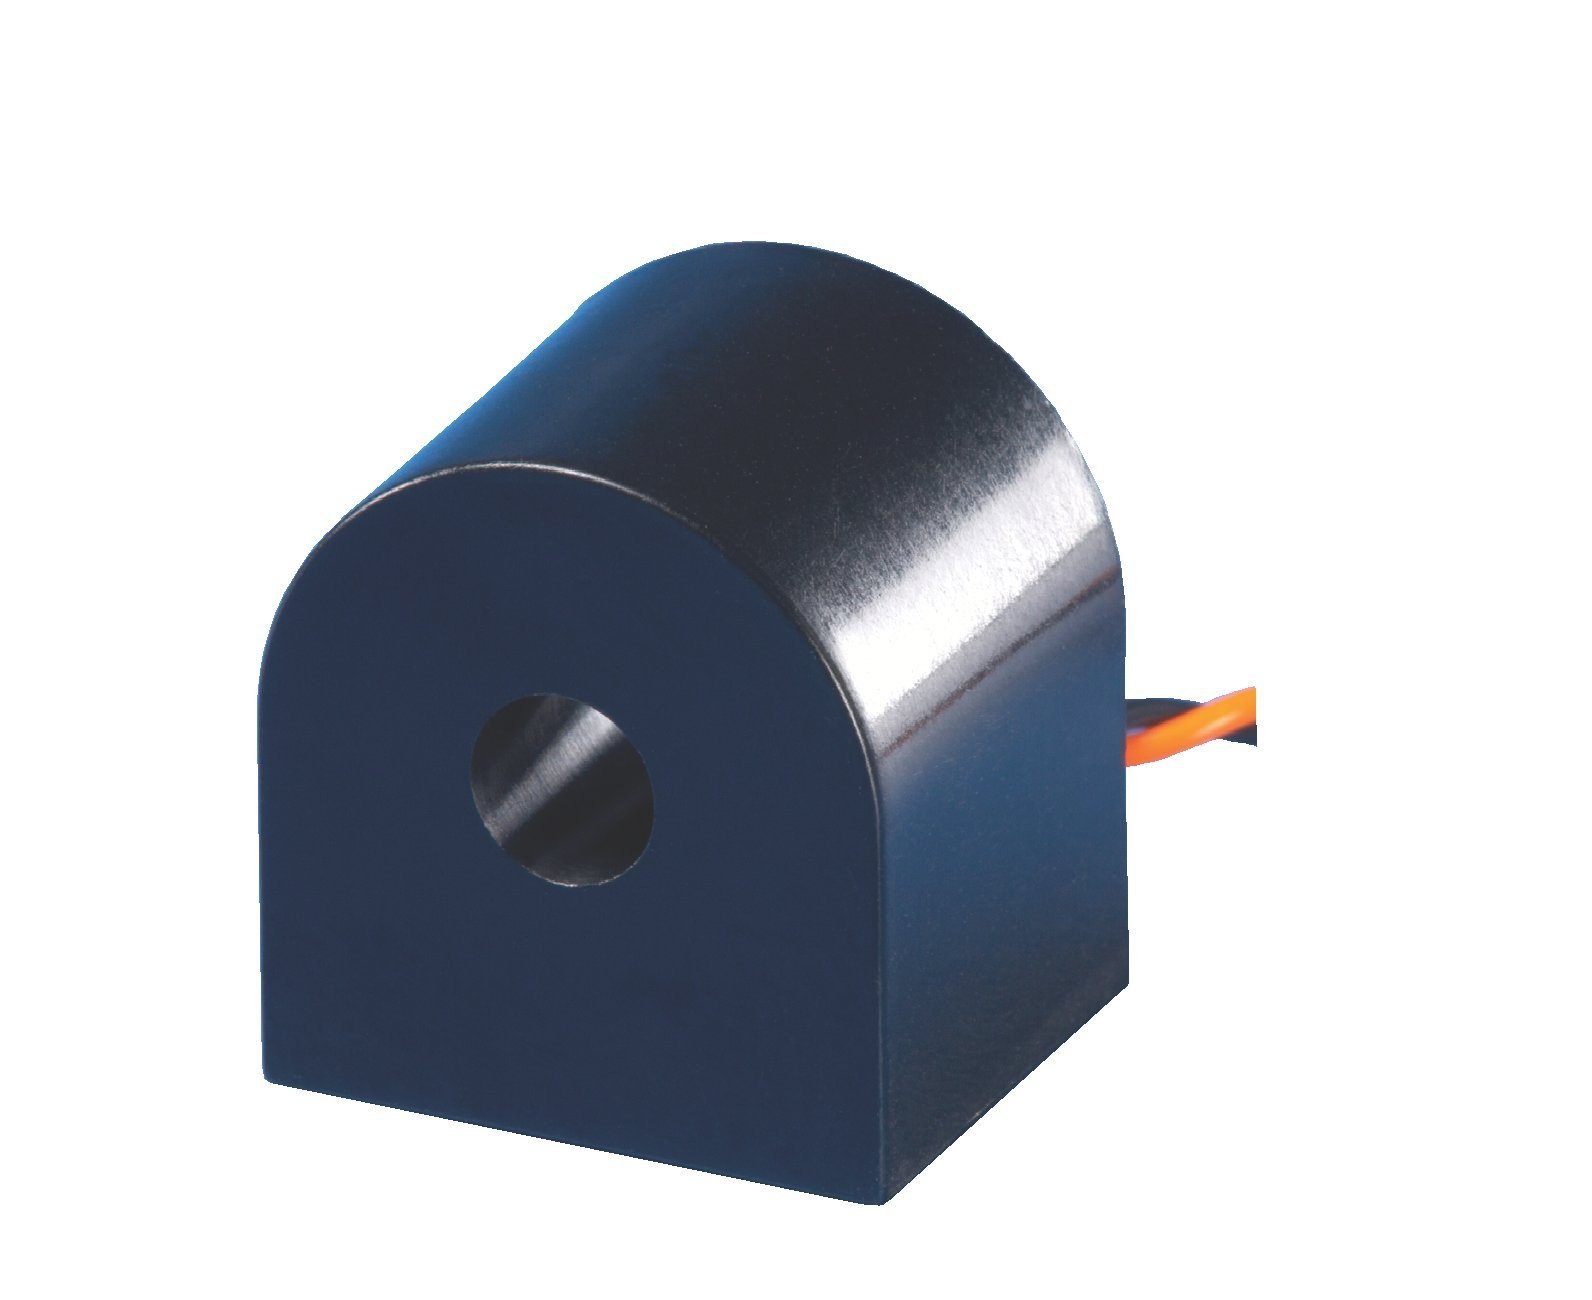 CR Magnetics CR9321-ACA AC Output Current Switch, Normally Open, 240 VAC RMS, 0.27'' Window Diameter